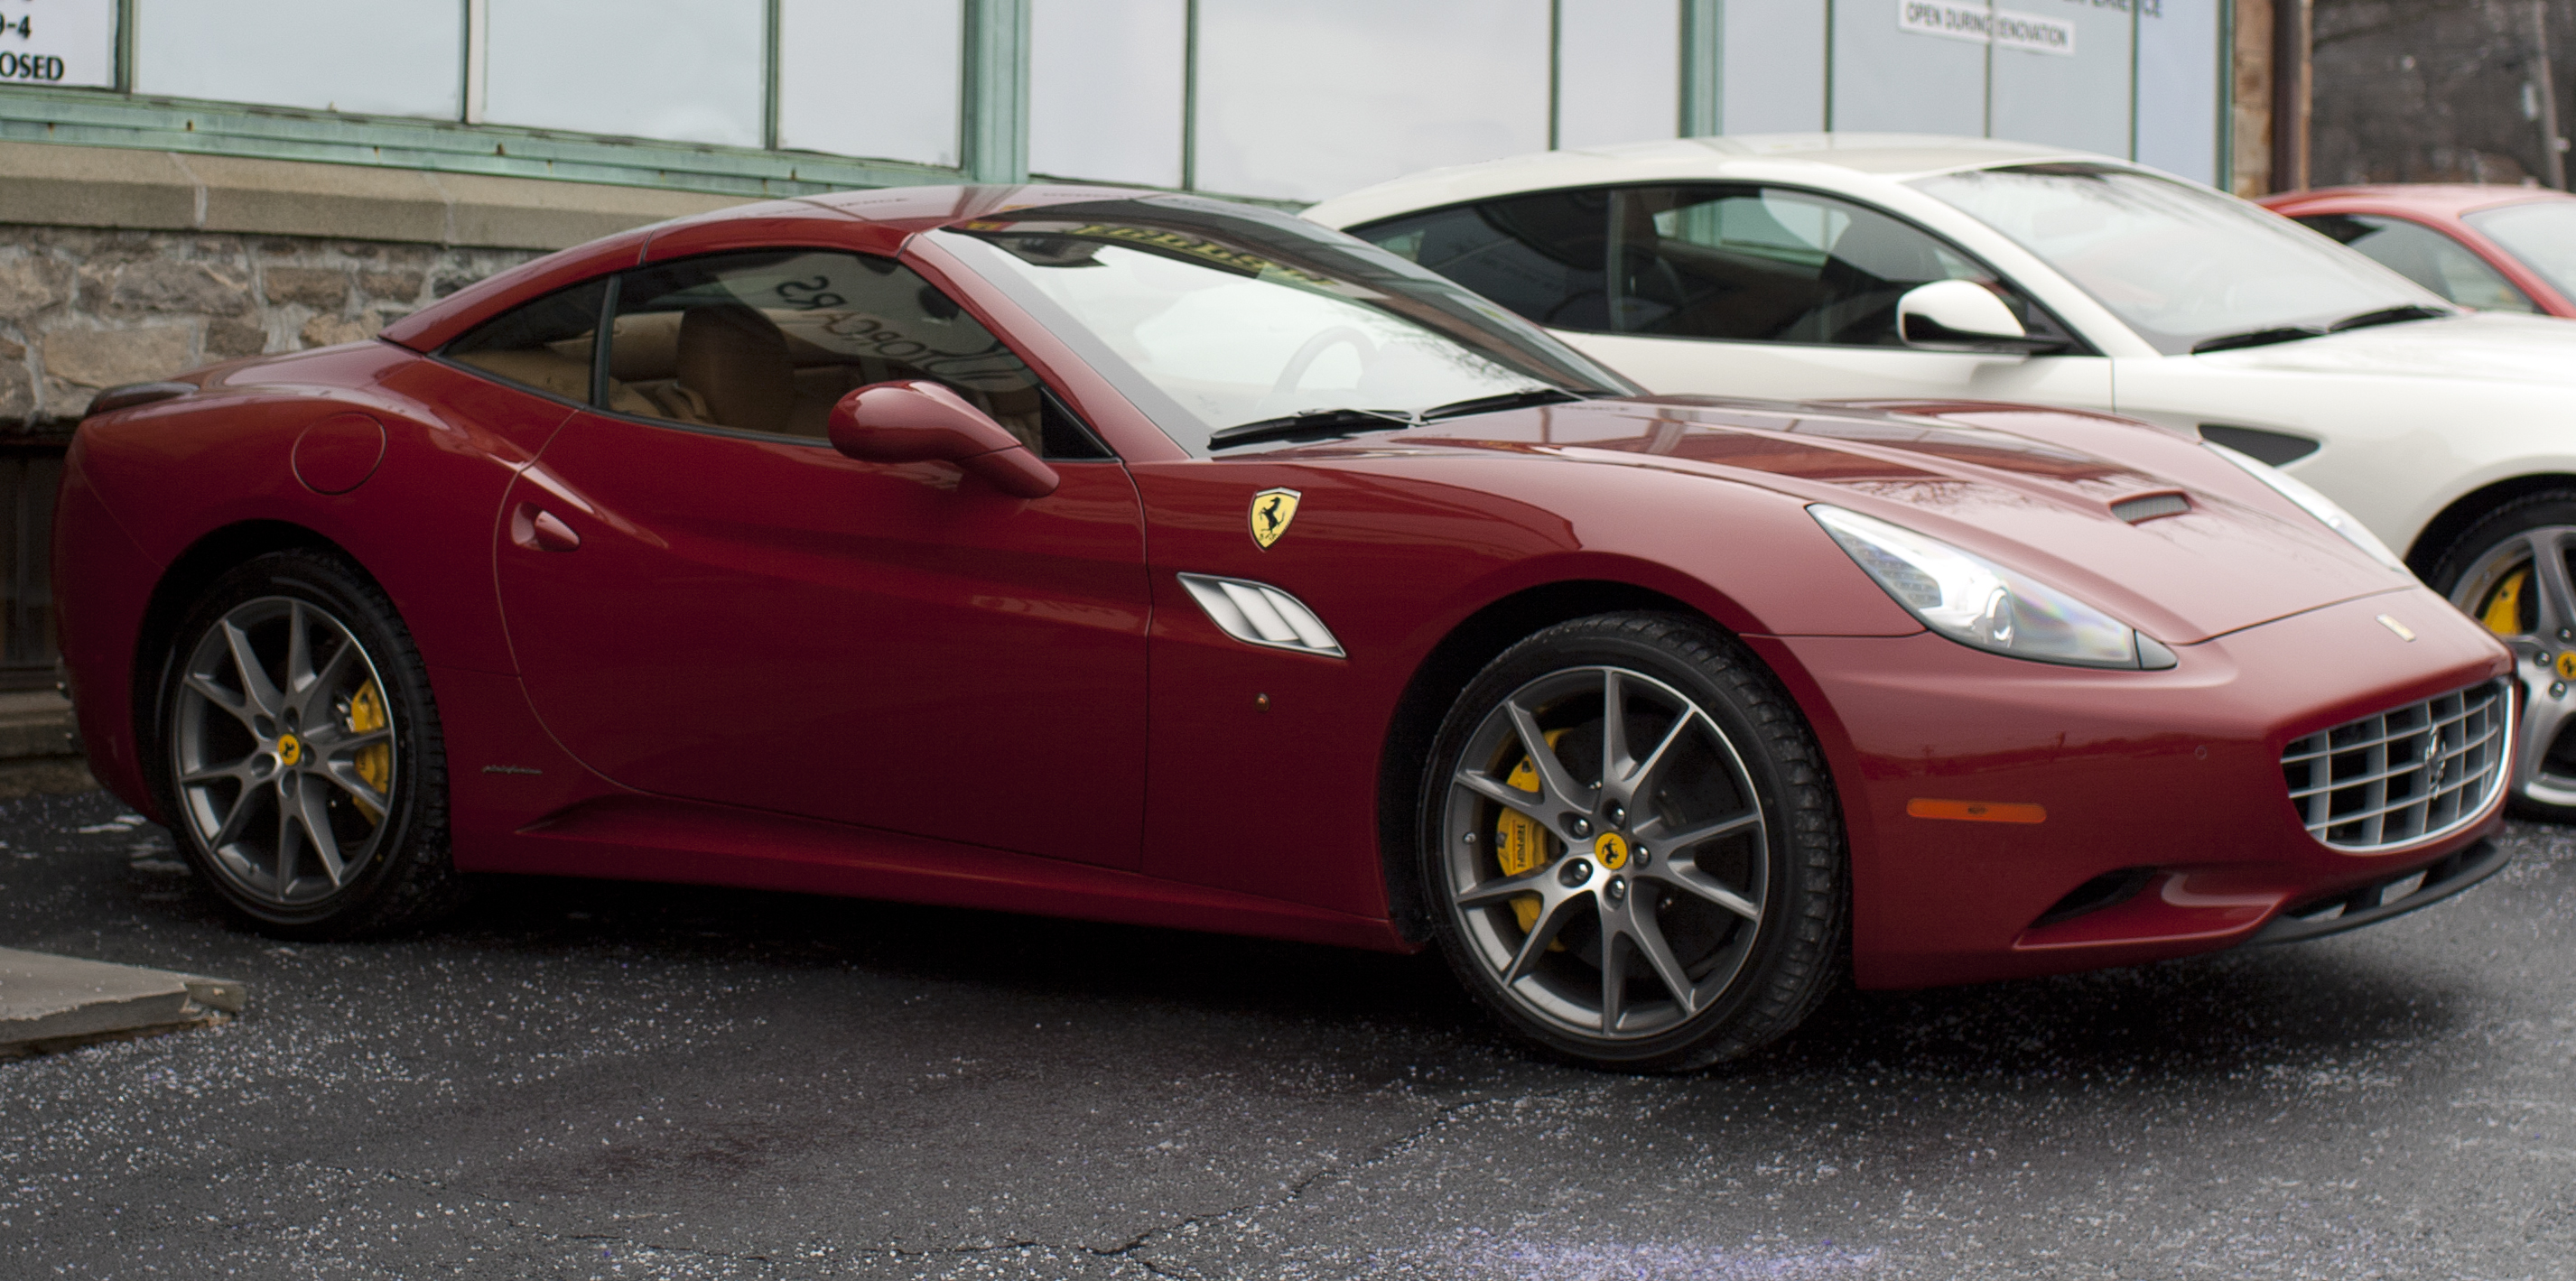 weekend road automobile with review one cover engine ferrari speciale news show handling car more magazine t test california